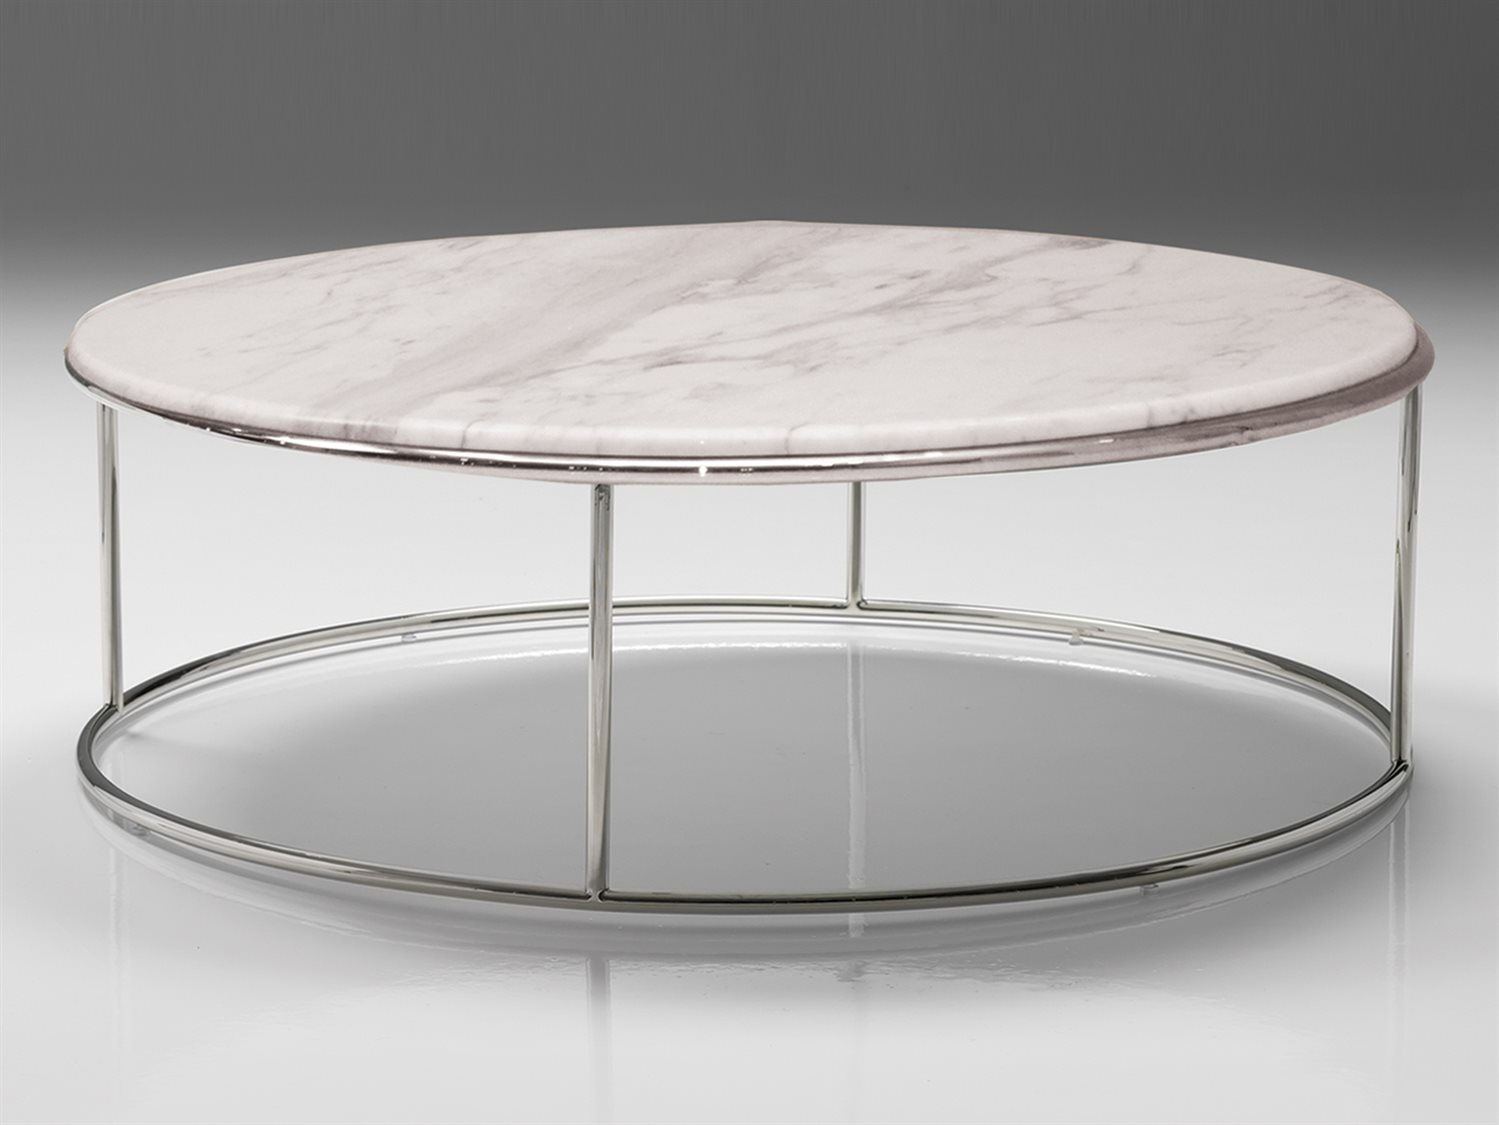 mobital-elysee-39-round-marble-coffee-table-round-marble-coffee-table-coffee-tables-and-ottoman-coffee-tables-for-sale (Image 4 of 10)